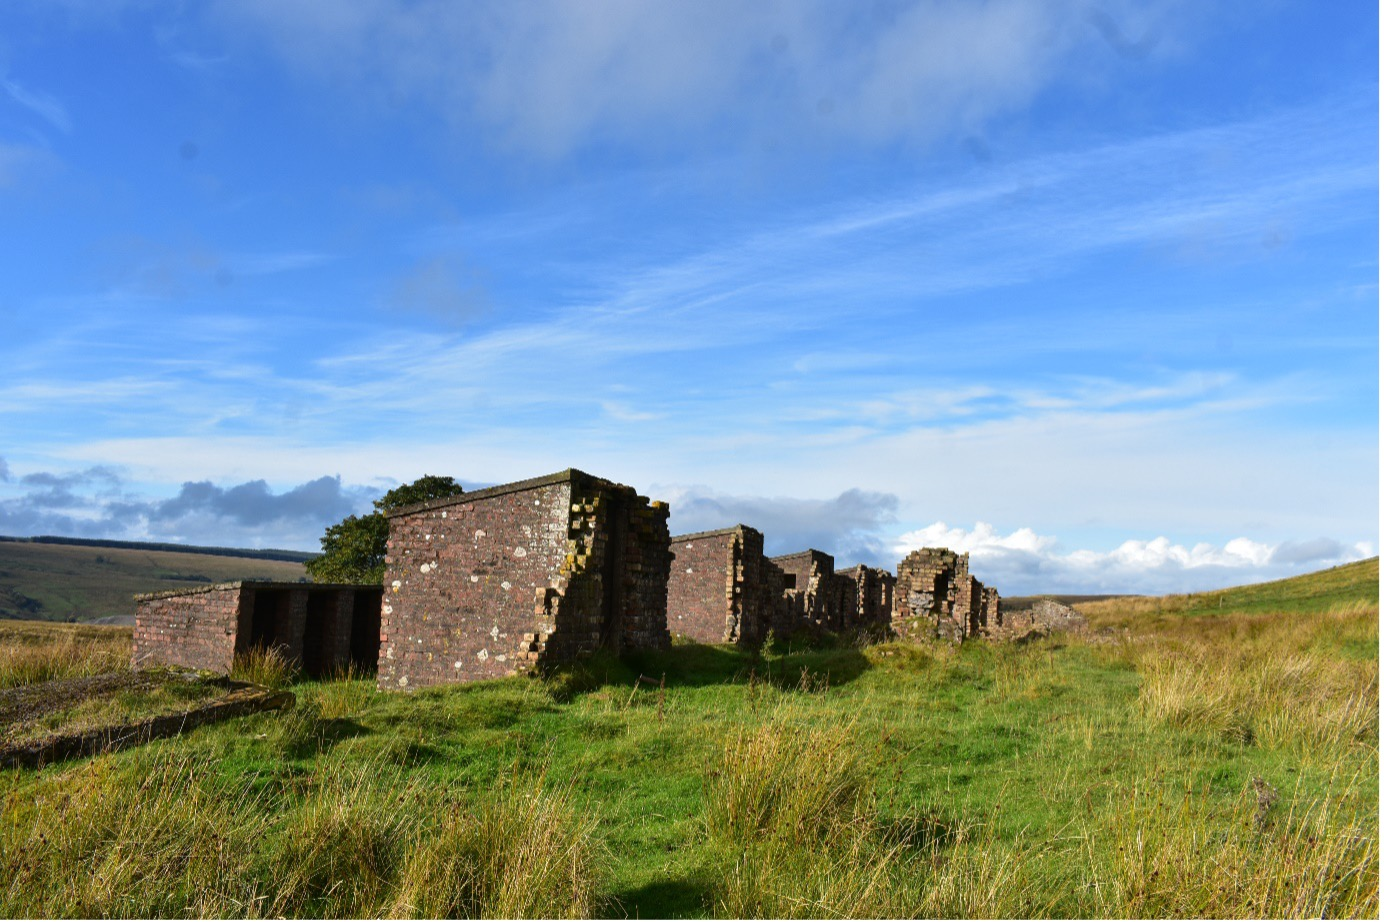 Row of outhouses  surrounded by grass and against a blue sky at the site of the mining village of Corbie Criaig's Aryshire